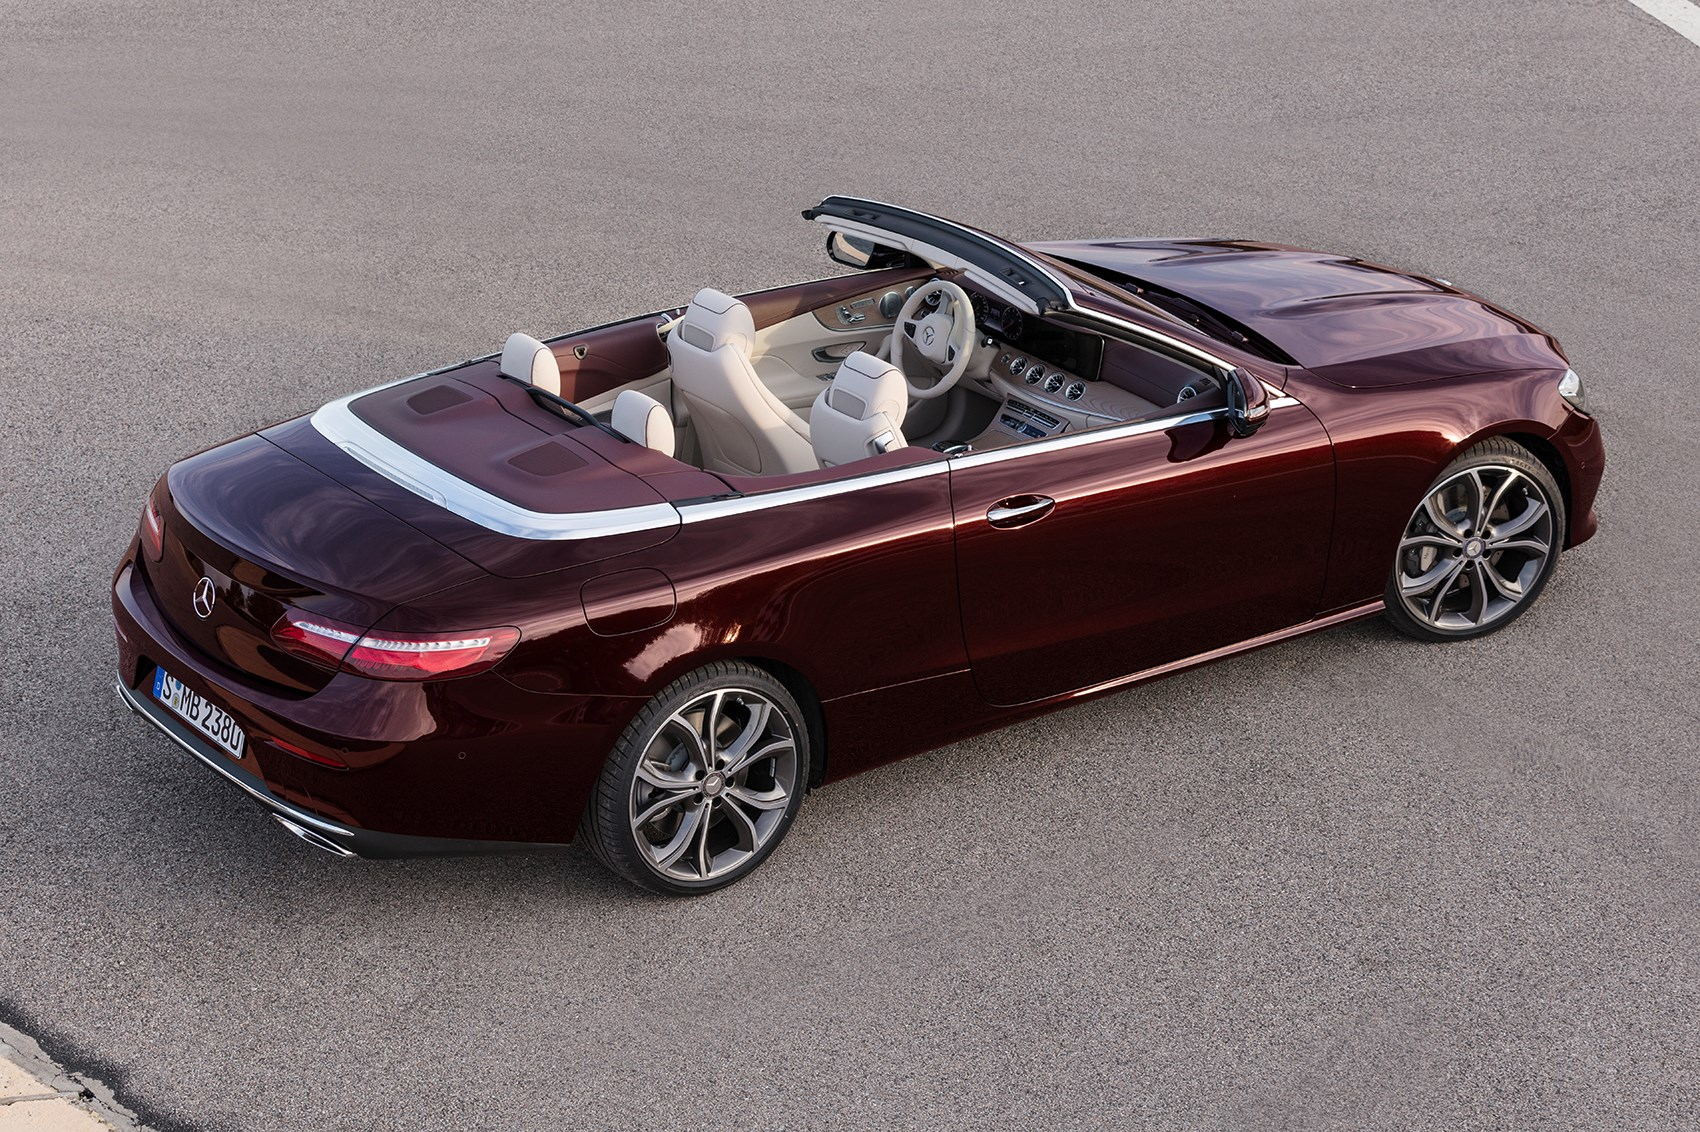 Merc Blows The Roof Off The Mercedes E Class Cabriolet At